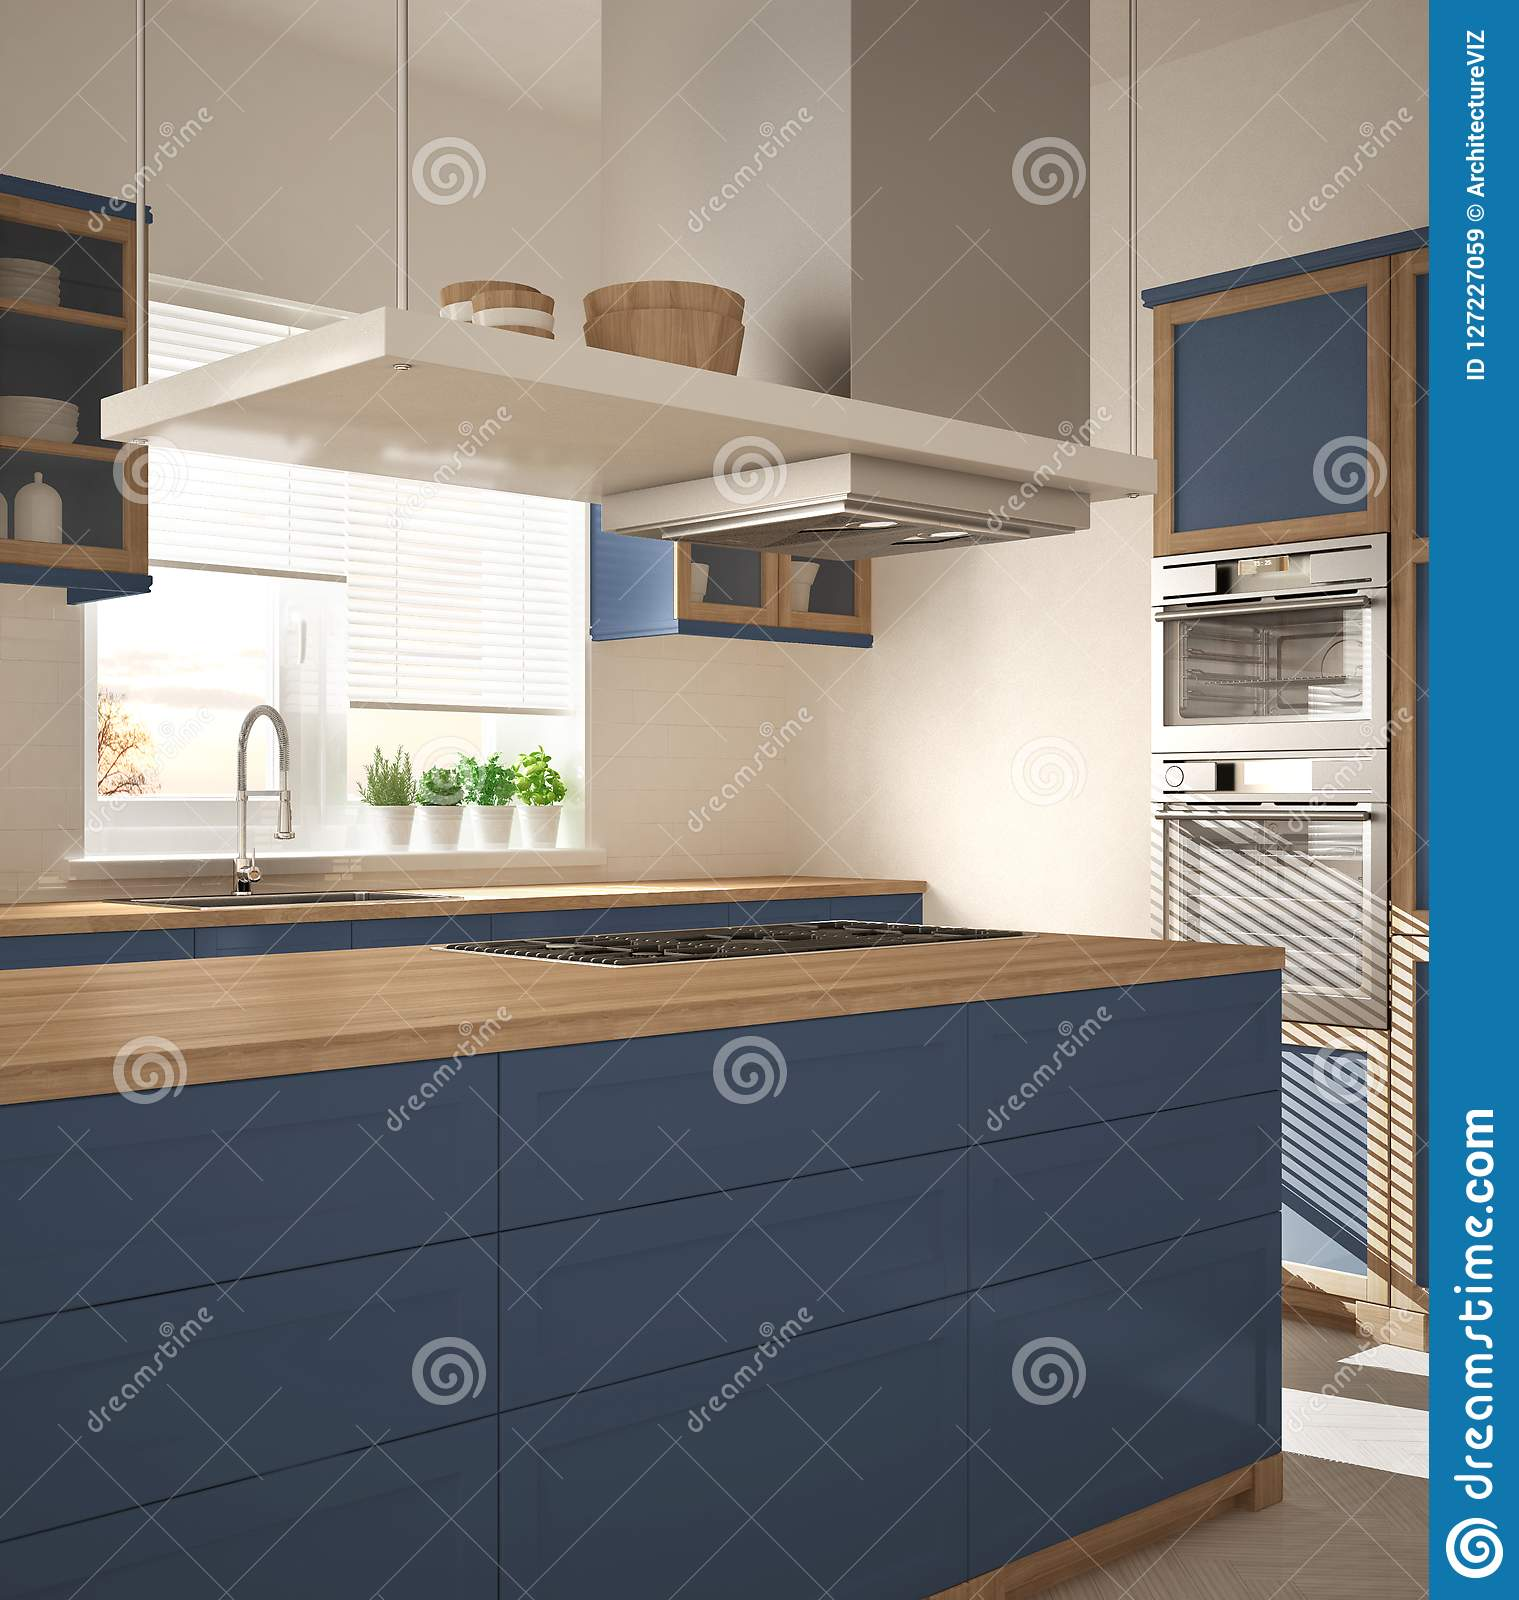 Modern wooden and blue kitchen with island gas stove and sink parquet herringbone floor